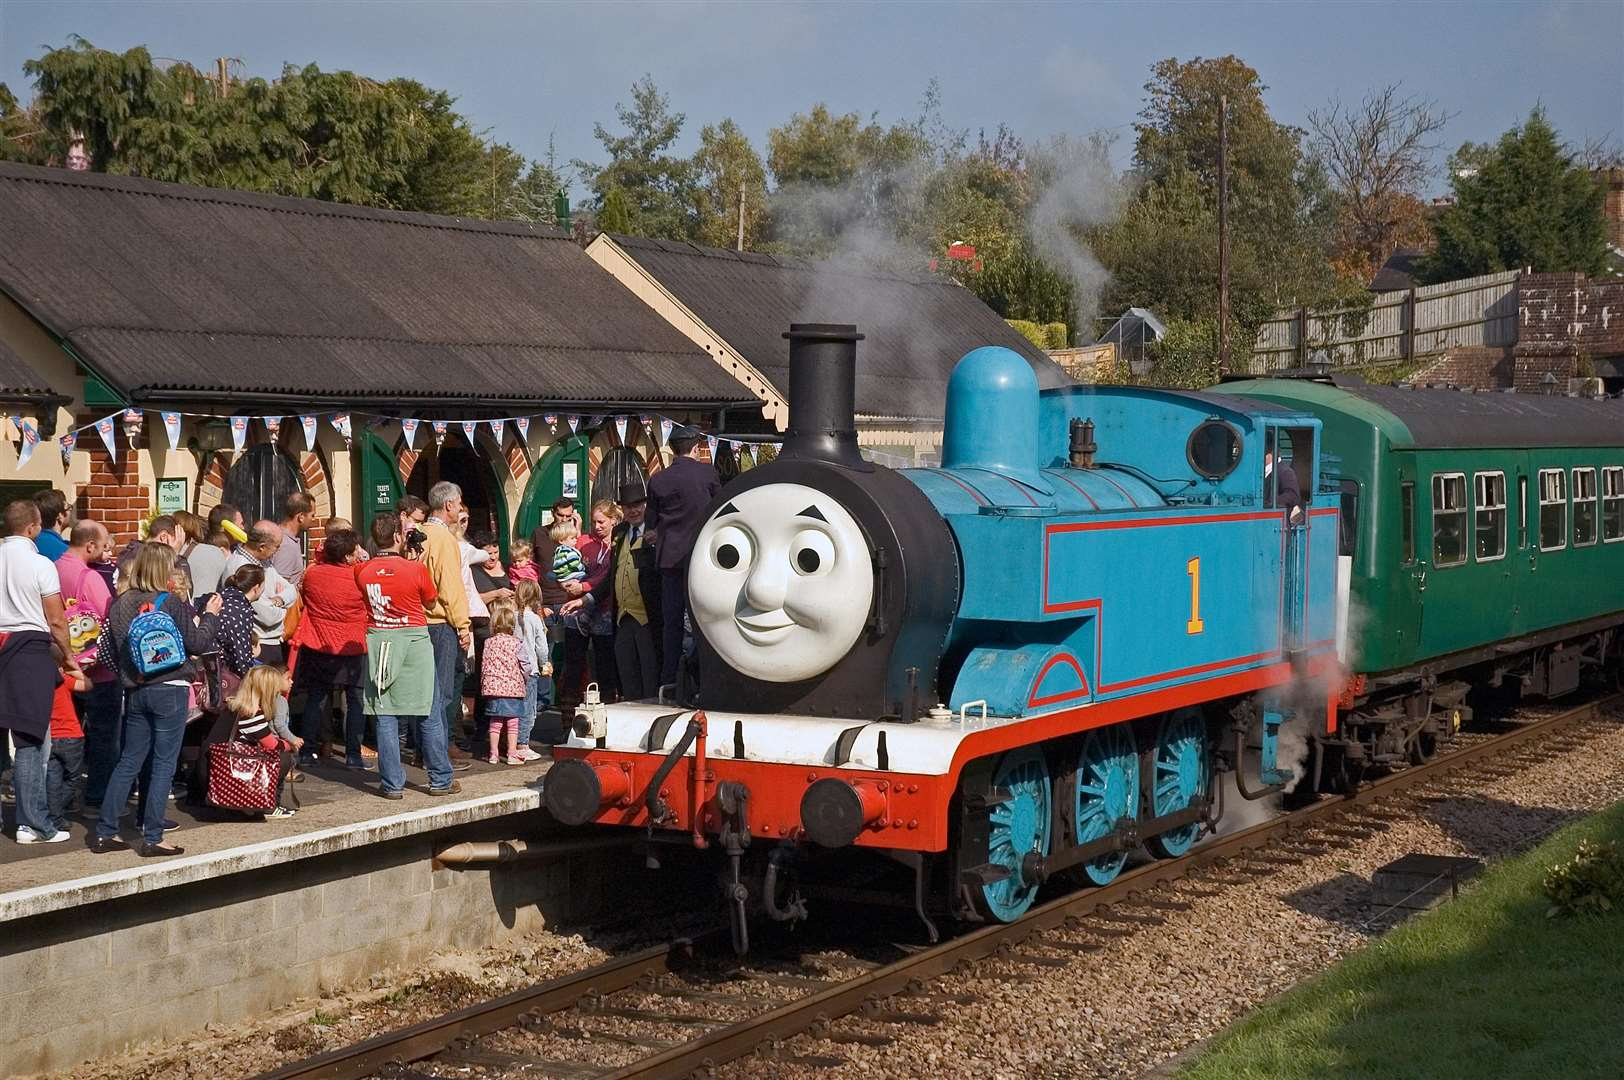 Families are advised to book their tickets in advance for the Thomas event days